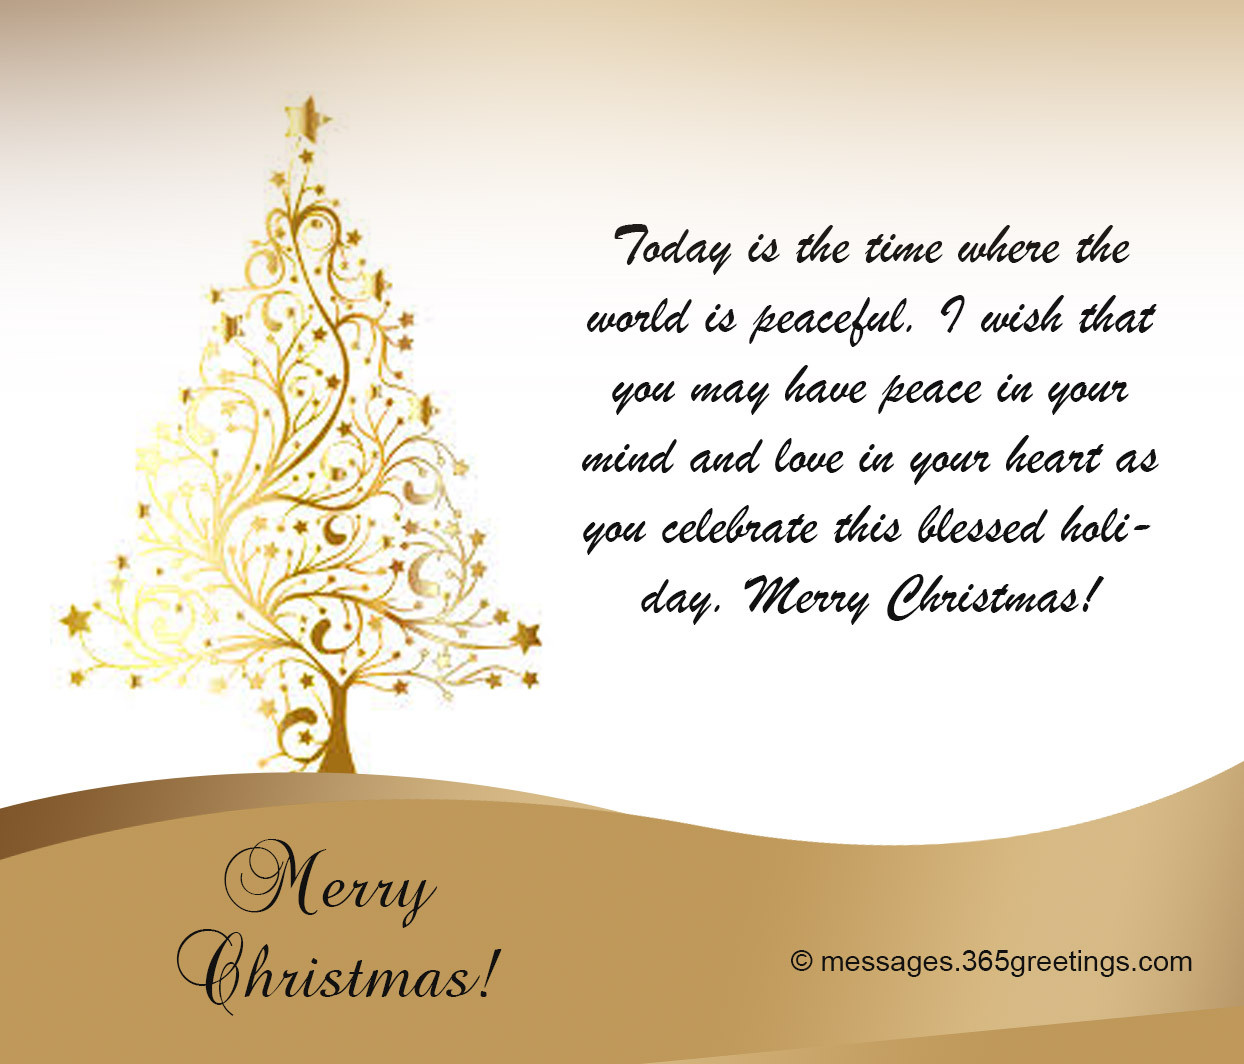 Christmas Quotes For Cards  Best Christmas Card Sayings and Greetings 365greetings